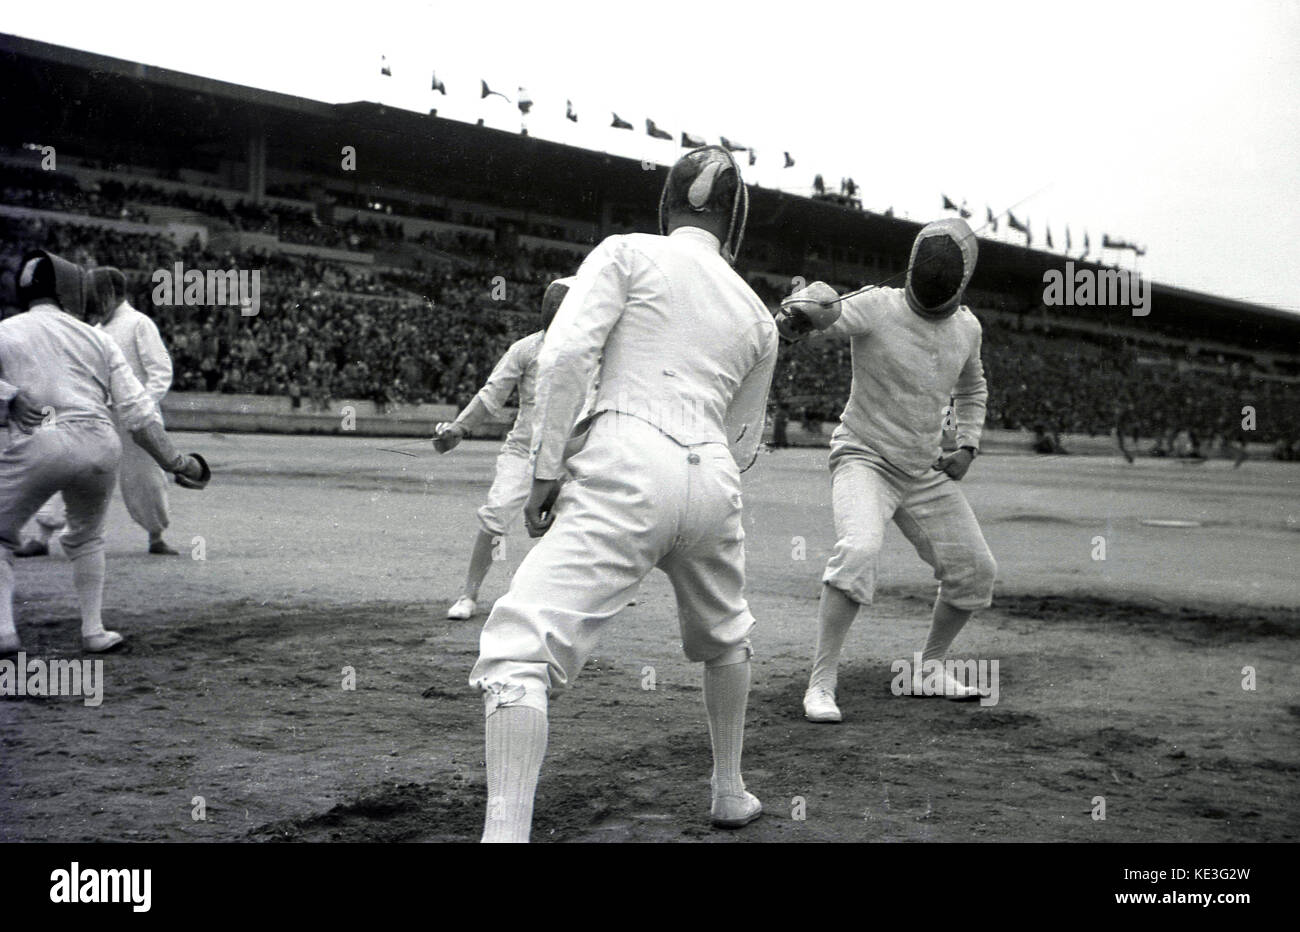 1938. historical, male competitiors fencing in the centre of the giant Strahov Stadium, Prague, Czechoslovakia at - Stock Image